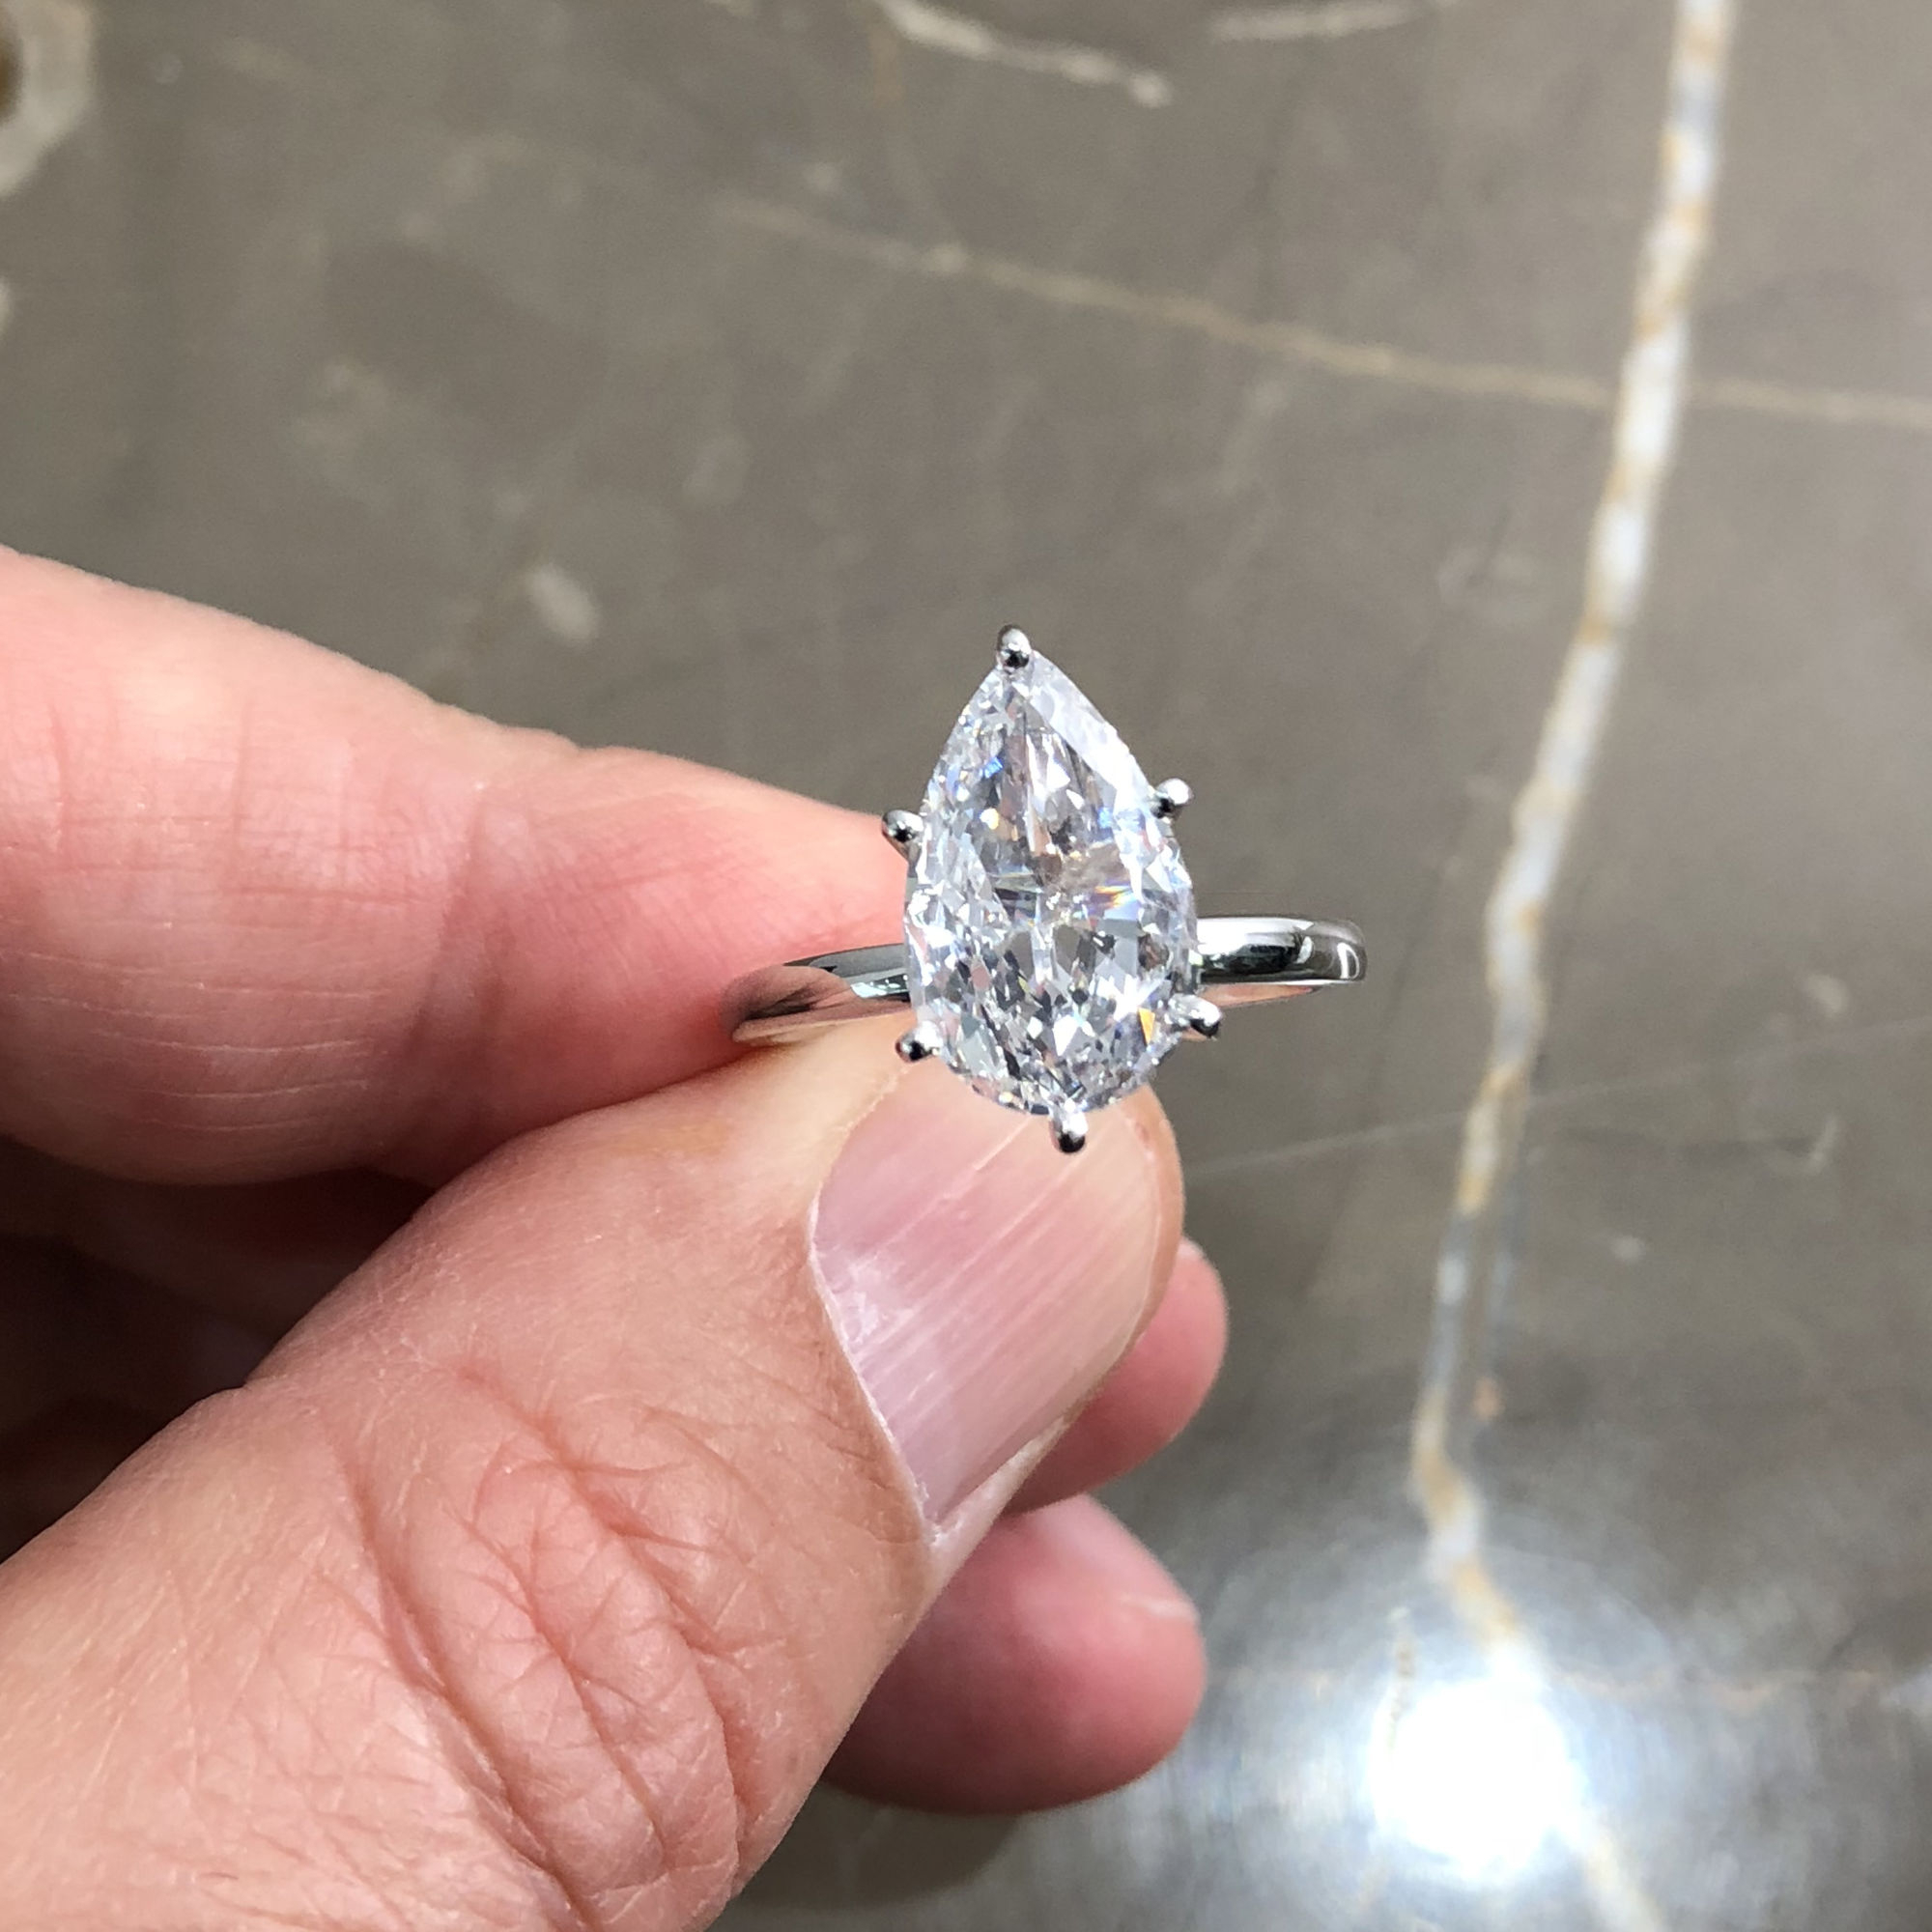 Details About Gia Certified 2.01 Carat Pear Shape F – Vs2 Solitaire Diamond  Engagement Ring Throughout Pear Shaped Engagement Rings (Gallery 5 of 25)